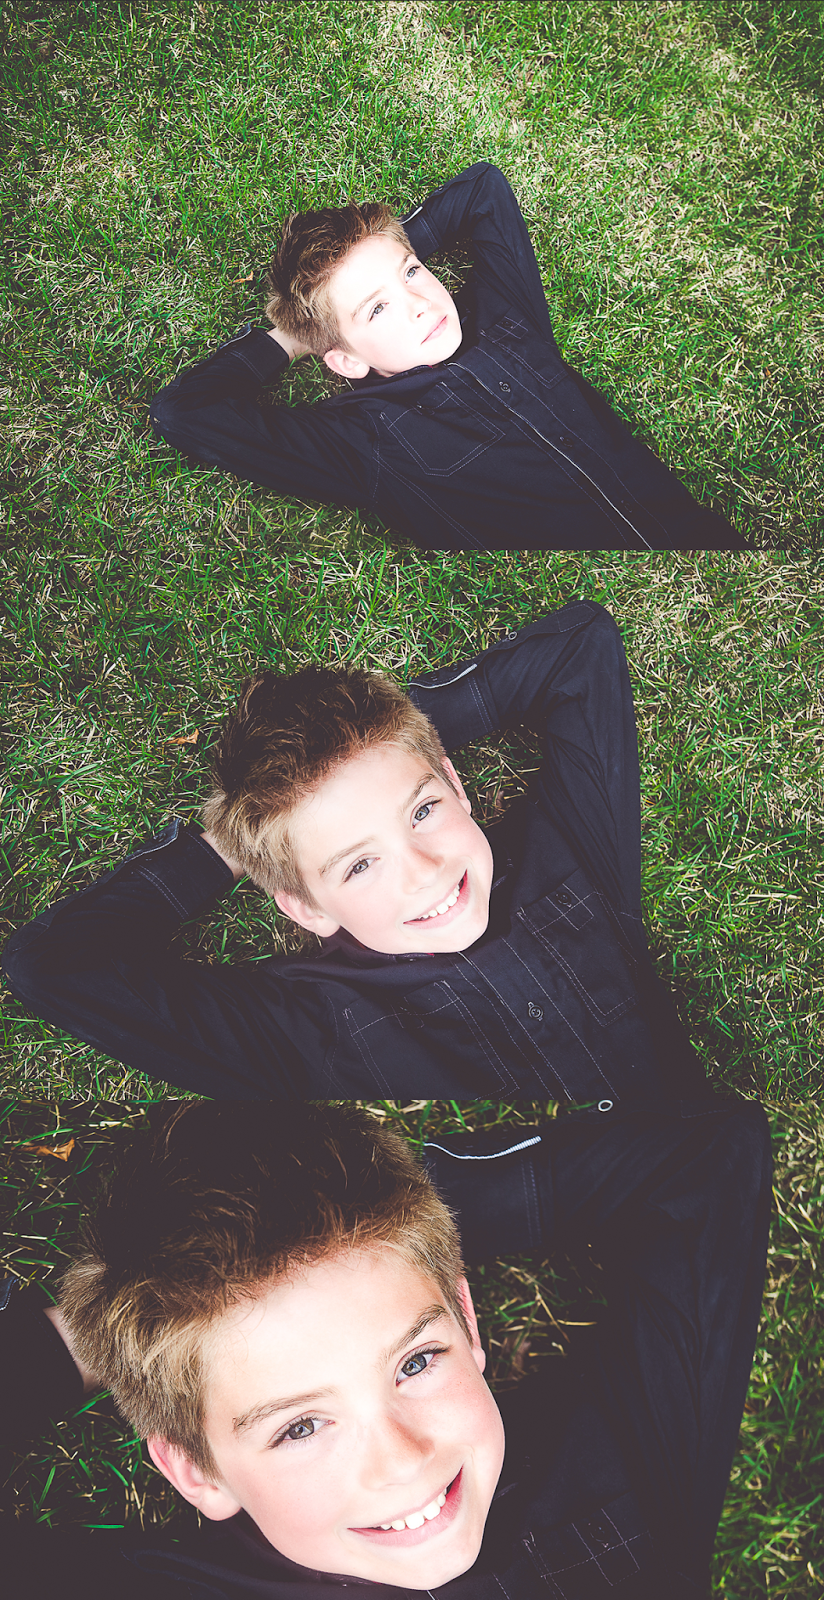 modern portraits of a child on grass